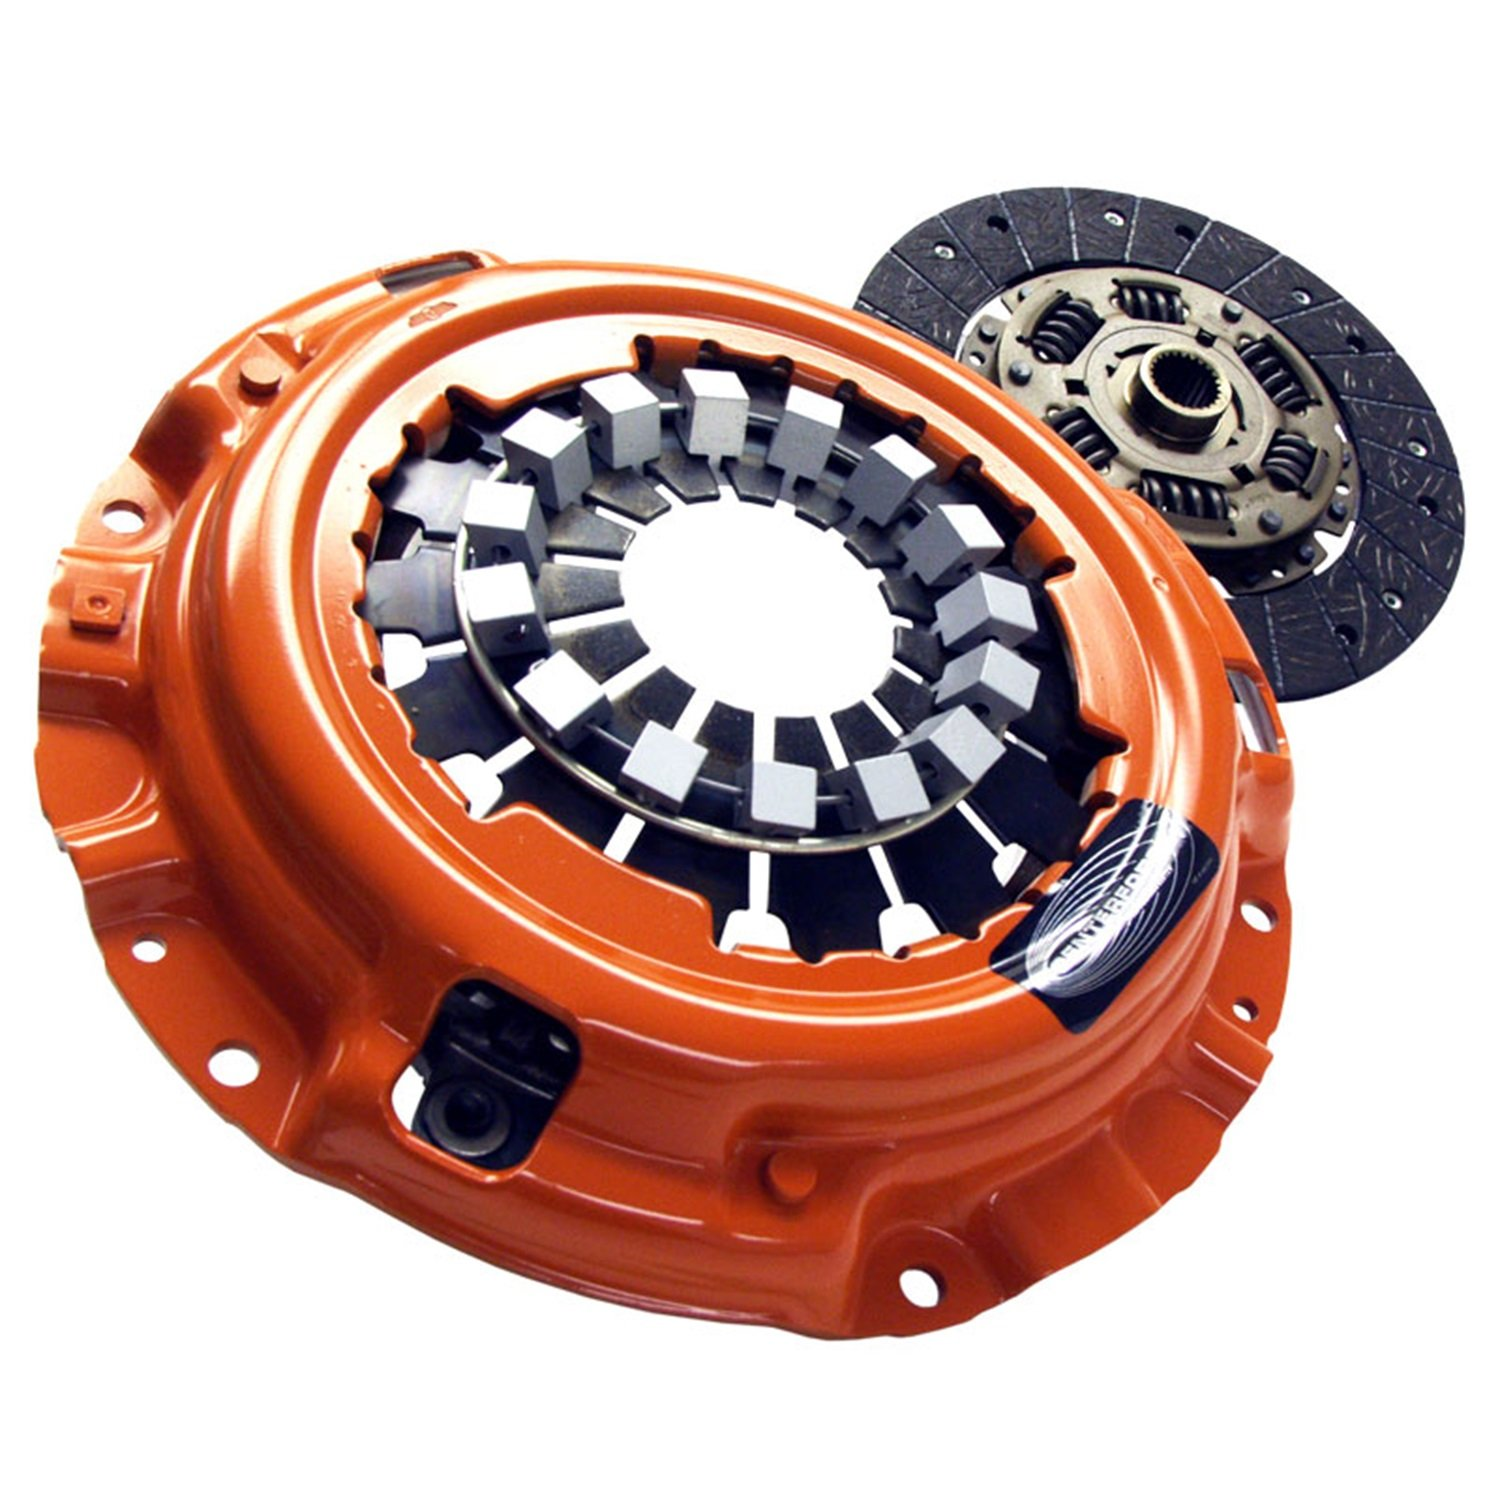 Centerforce CFT583402 Centerforce II Clutch Pressure Plate and Disc by Centerforce